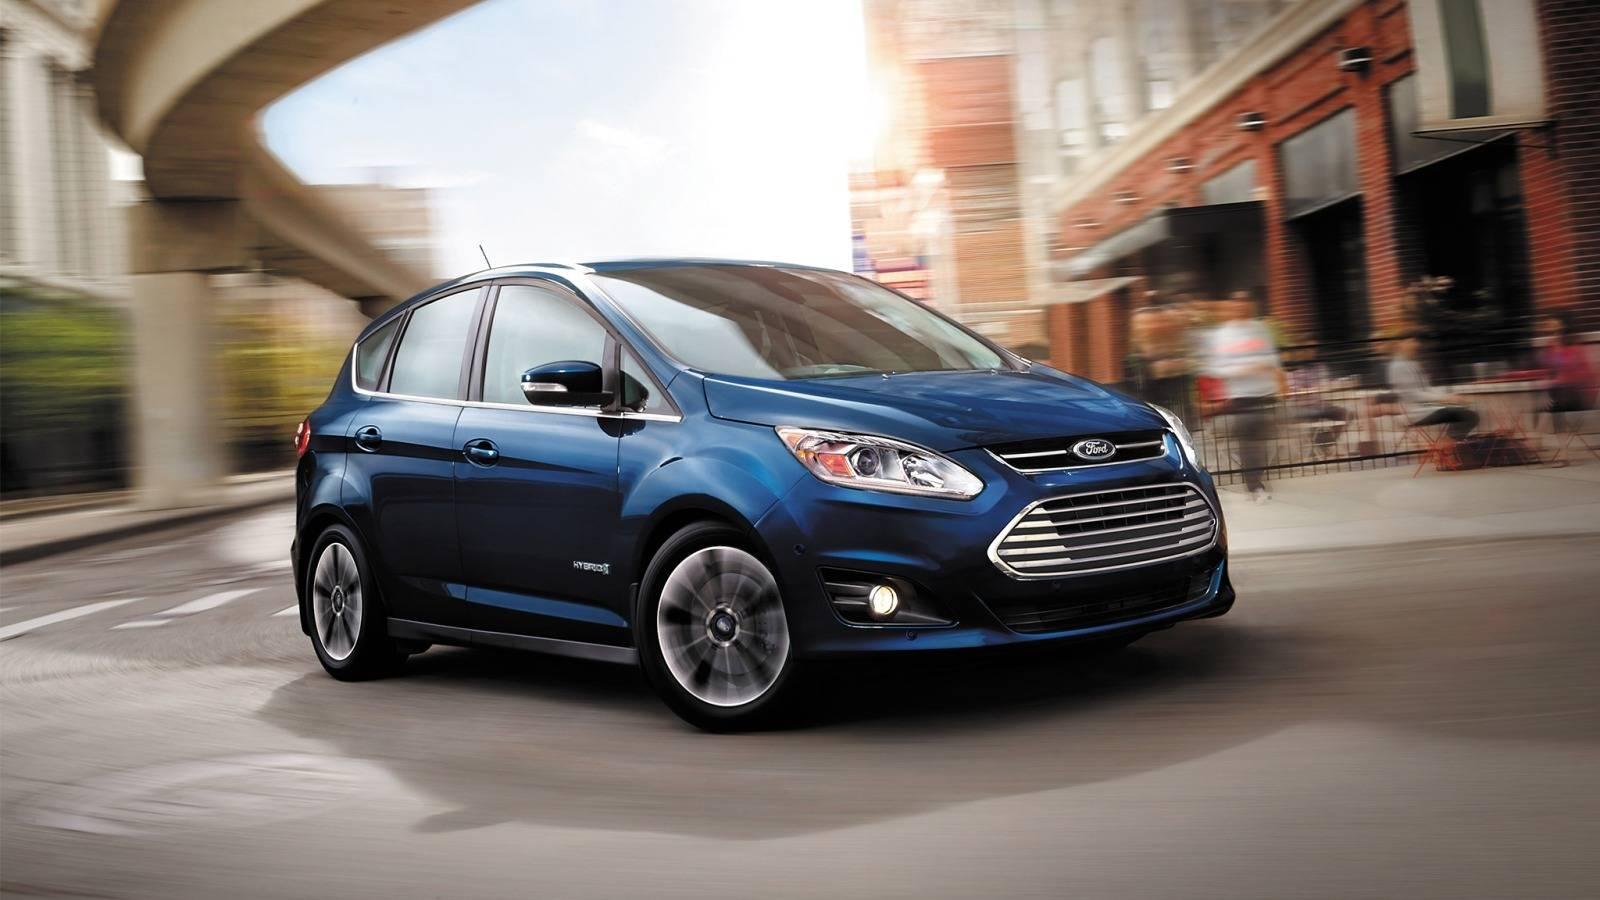 Ford C-Max in Hillsborough